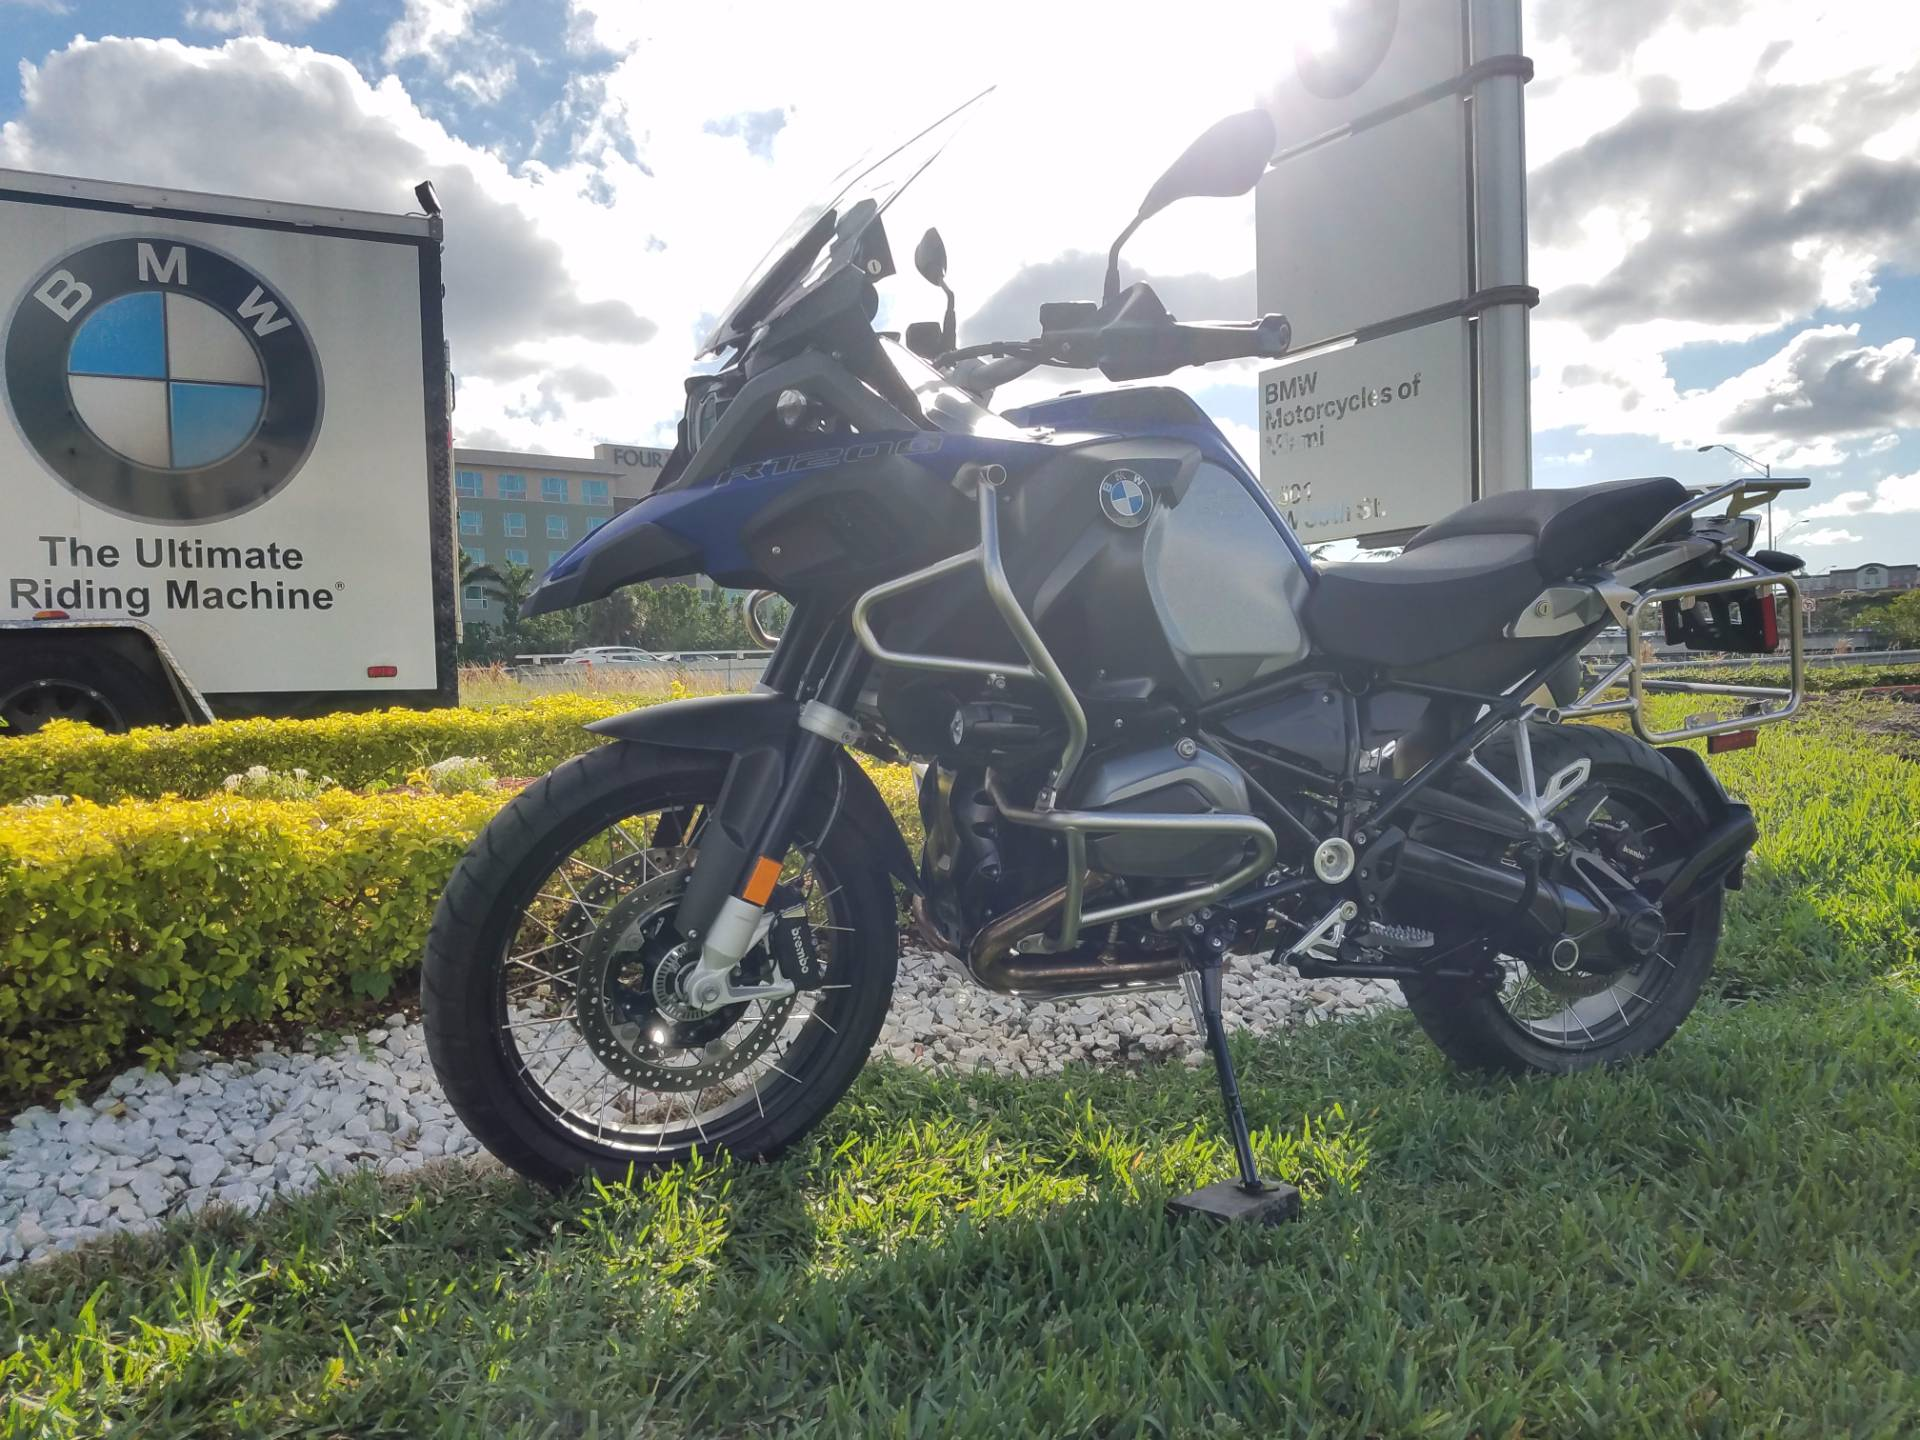 Used 2015 BMW R 1200 GSA For Sale, BMW R 1200GS Adventure For Sale, BMW Motorcycle R1200GSA, pre-owned BMW Motorcycle